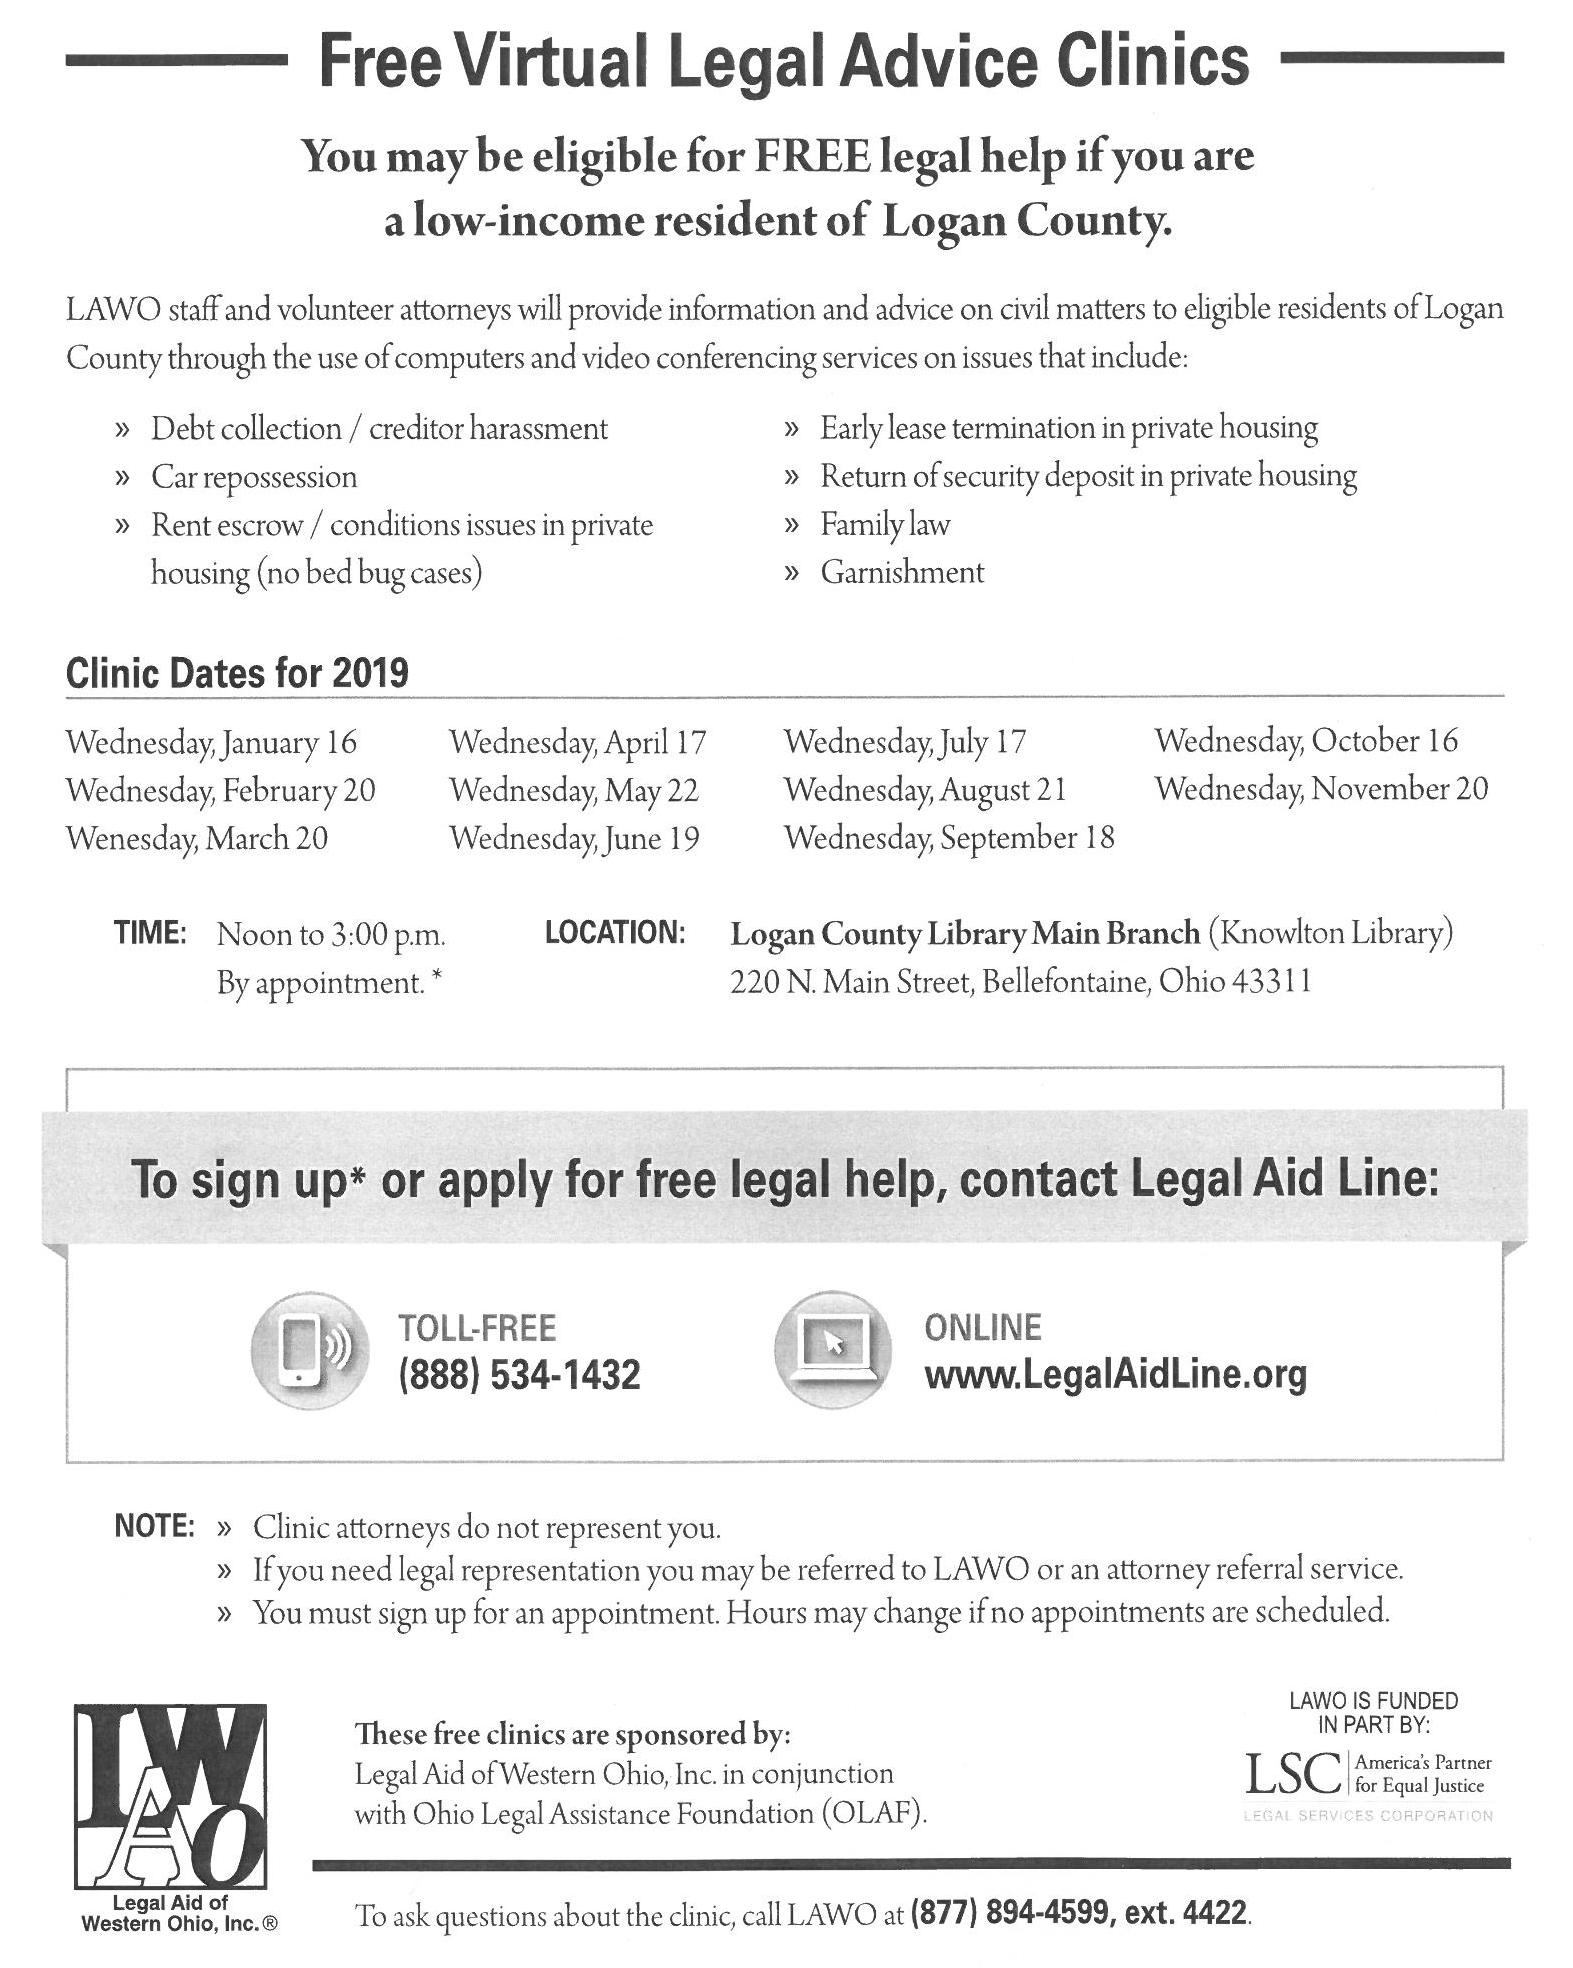 Free Legal Advice Clinics at the Knowlton Library | Logan